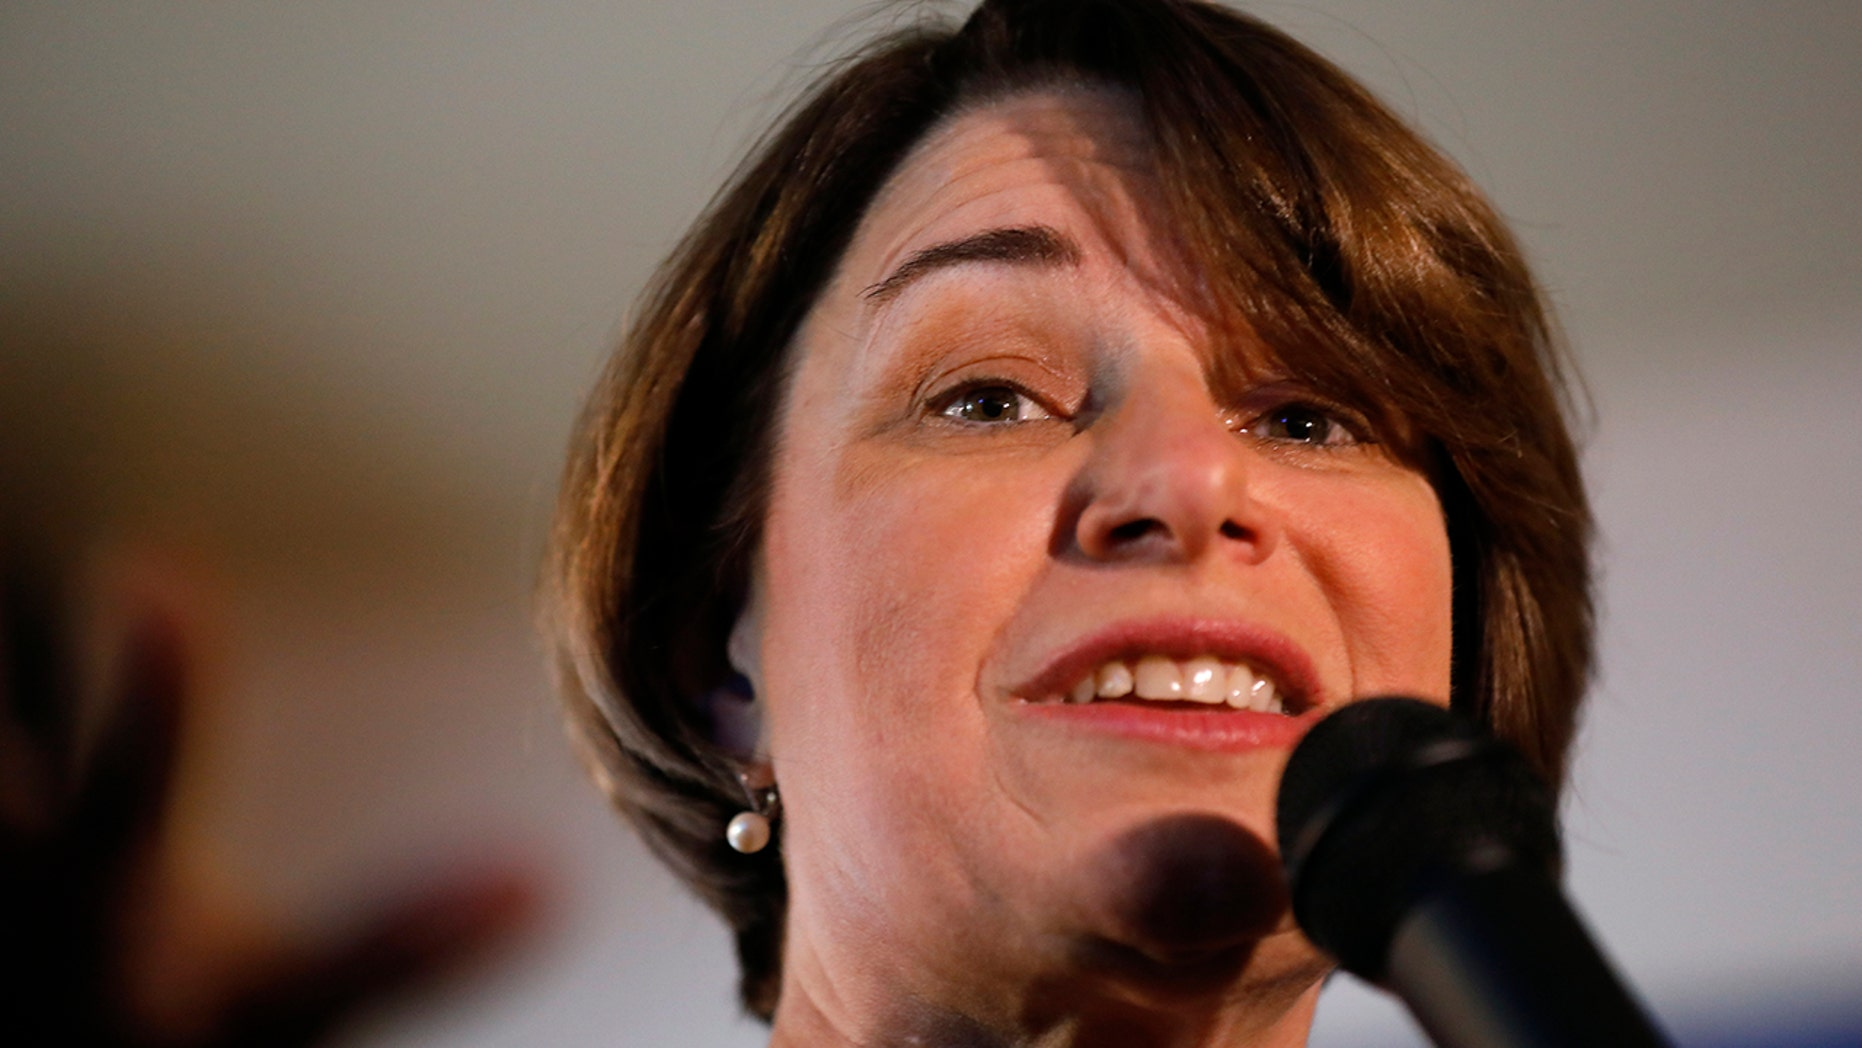 U.S. Sen. Amy Klobuchar, D-Minn., speaks during a meet and greet with local residents, Saturday, Feb. 16, 2019, in Mason City, Iowa. AP